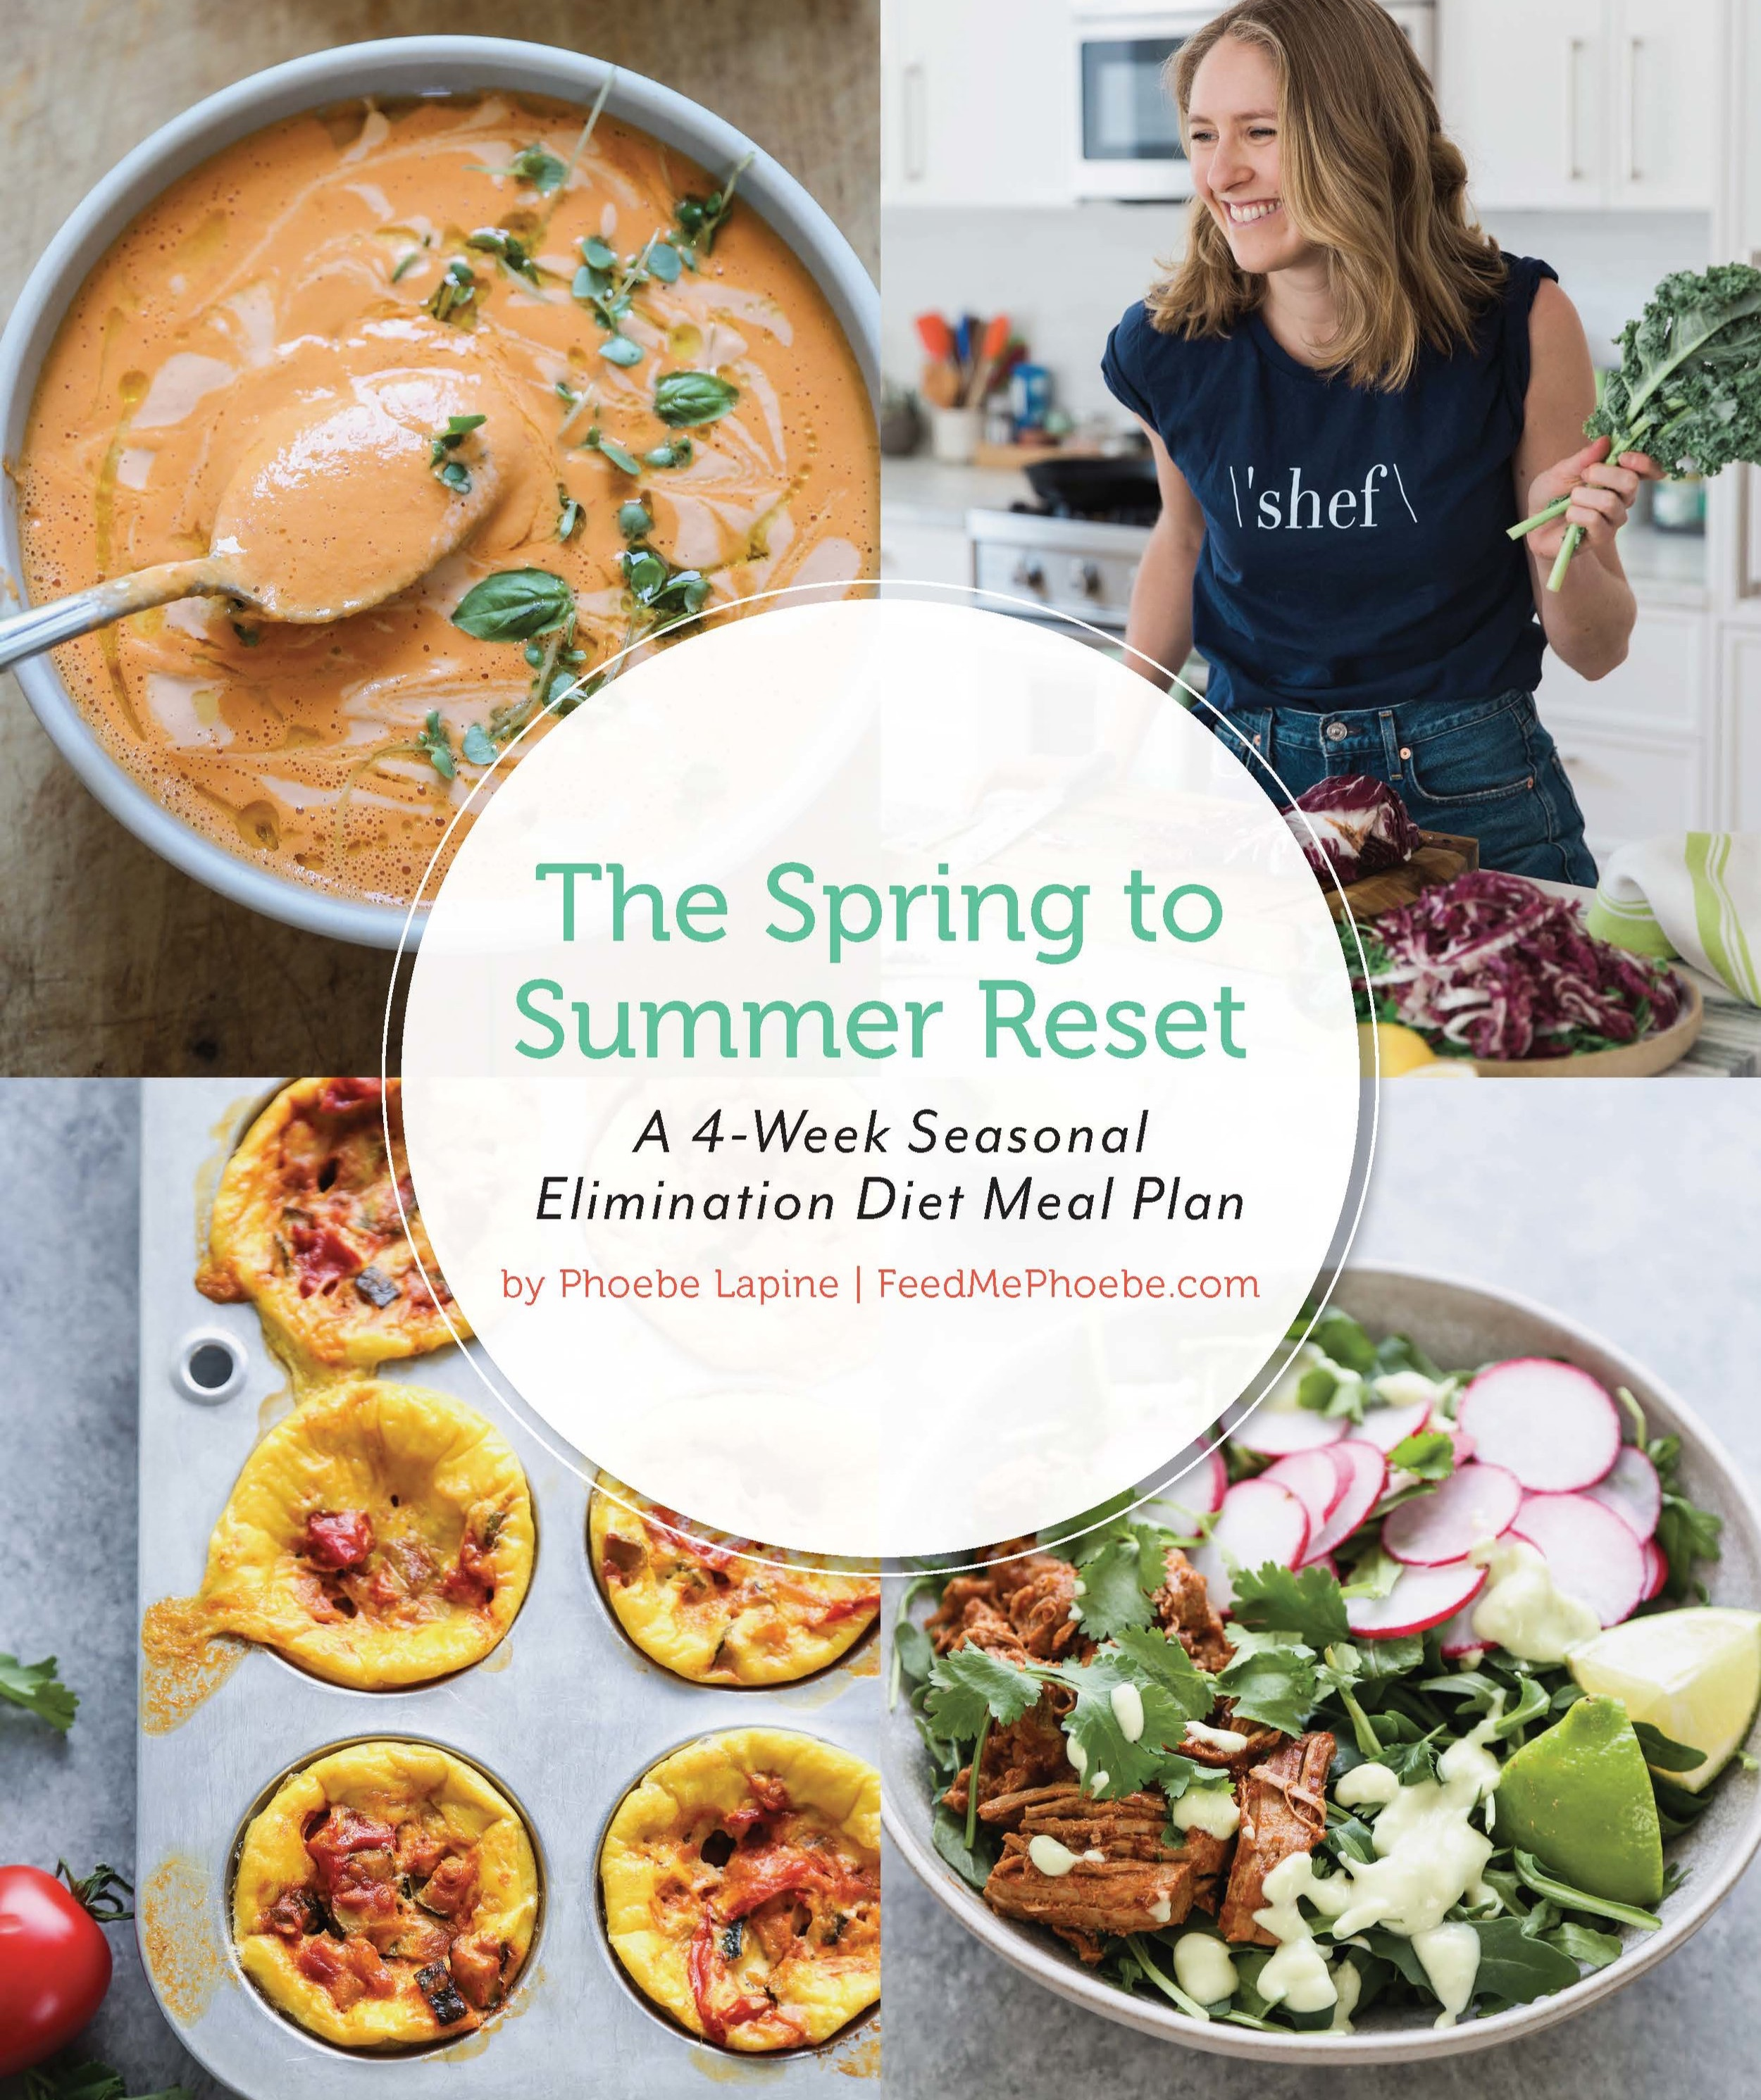 Spring+to+Summer+Reset_Cover_Page_01.jpg